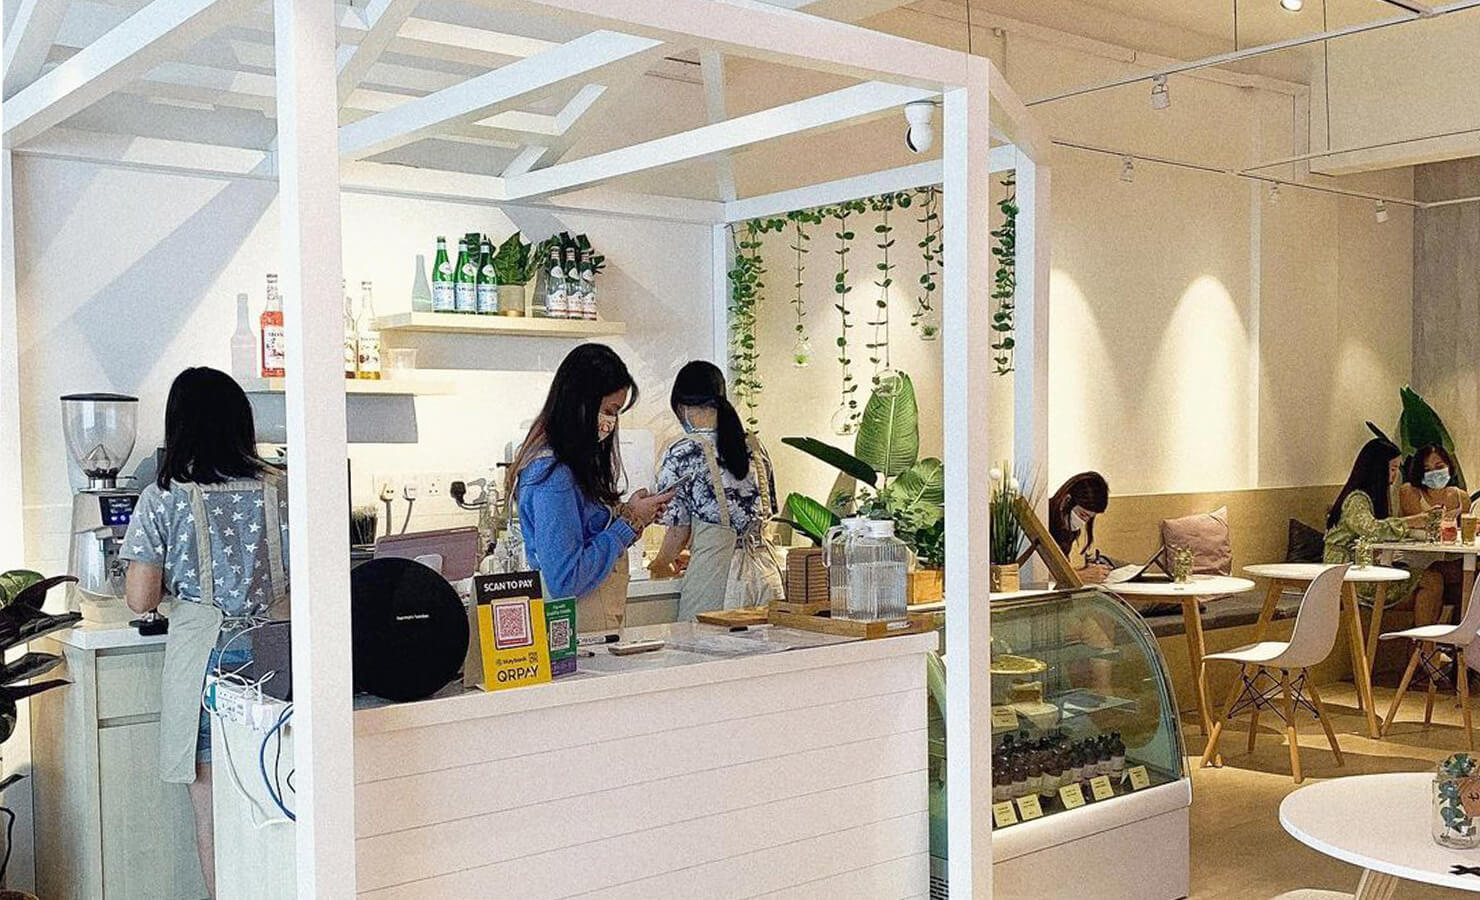 bloomthis-5-plant-flower-cafes-you-have-to-visit-11-cc-by-mel-cafe